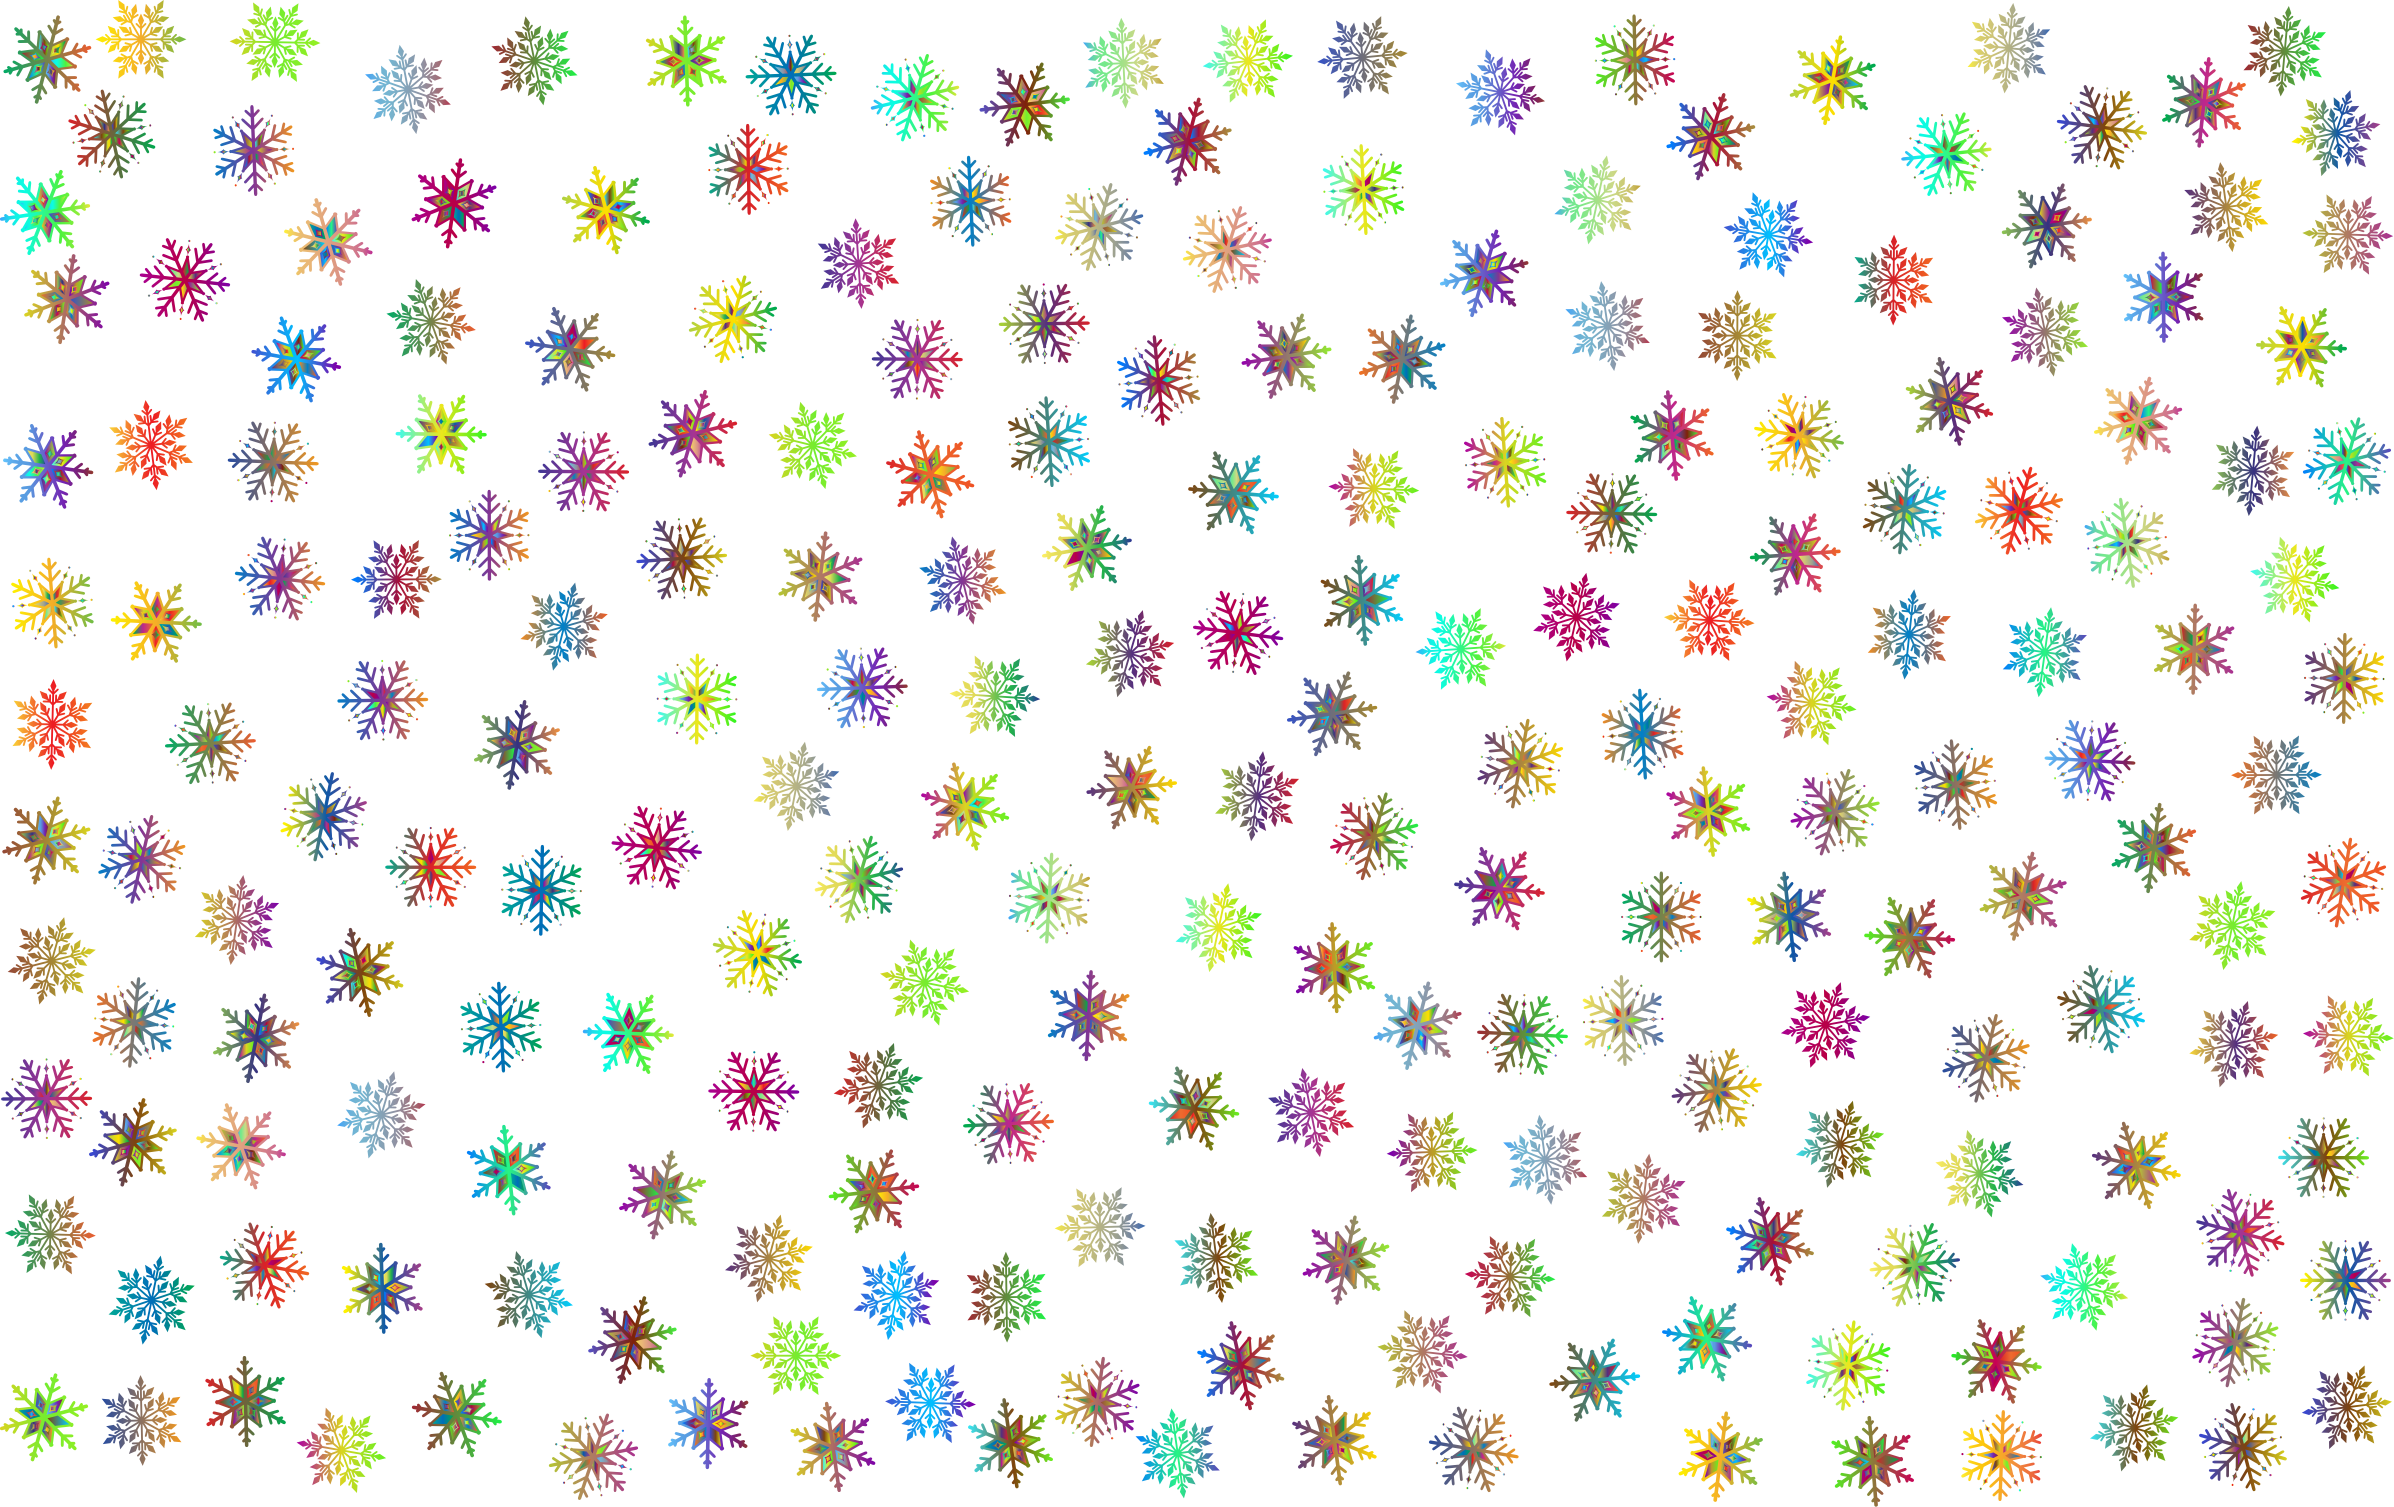 Snowflake wallpaper clipart free Clipart - Prismatic Snowflakes Pattern 3 No Background free